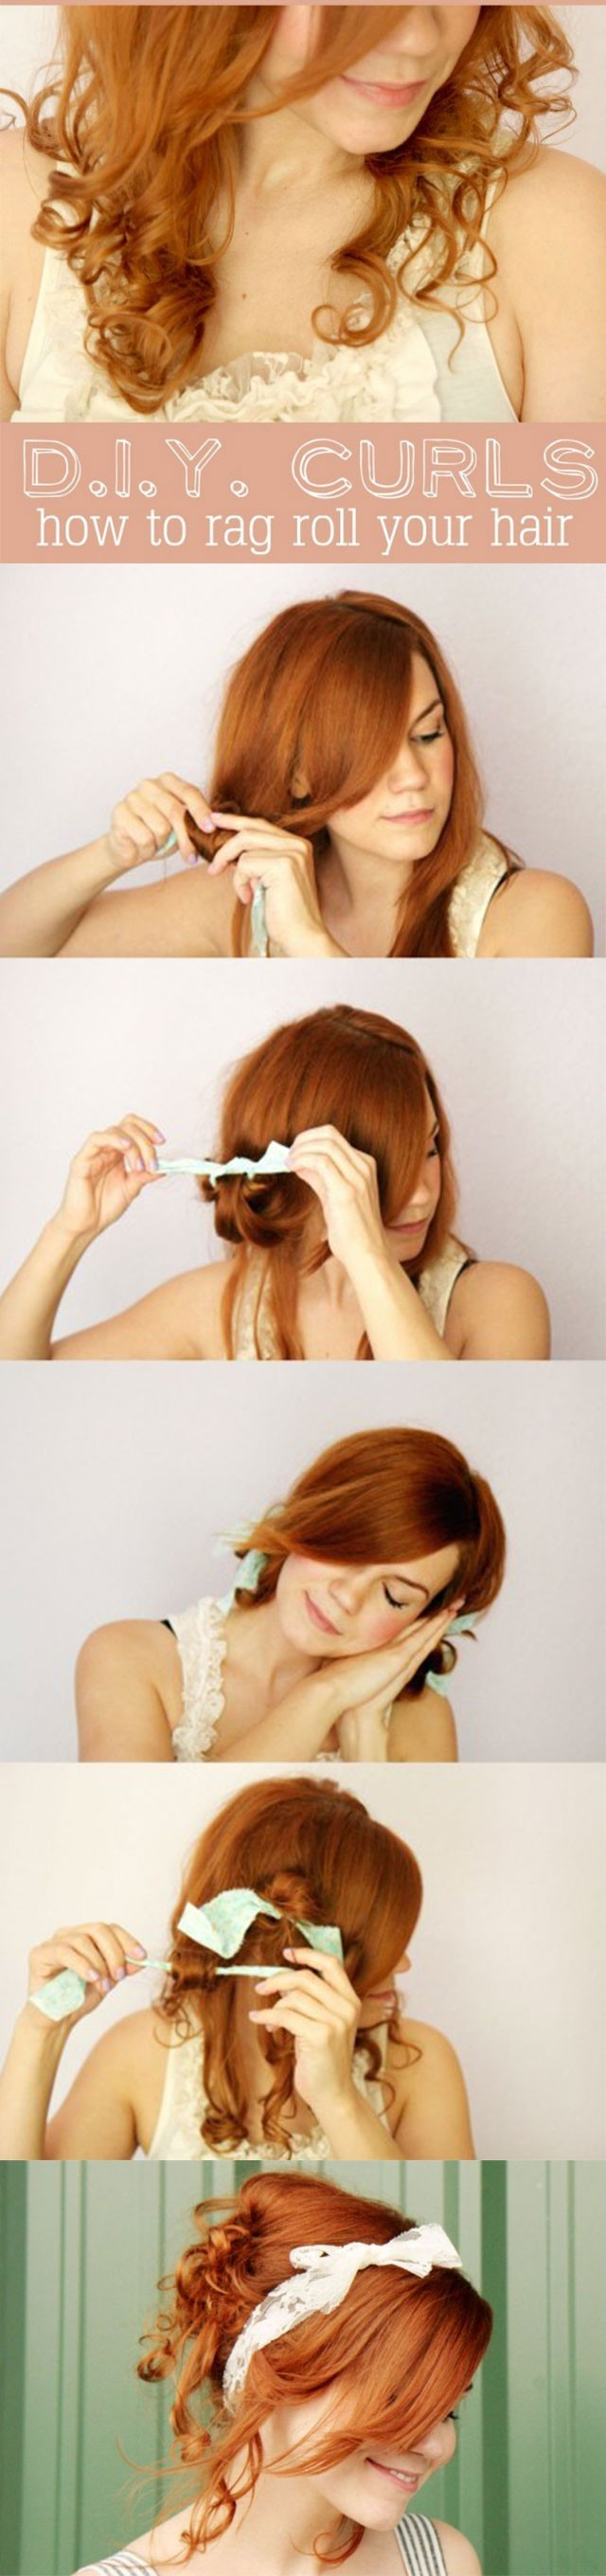 DIY Curls: How to Rag Roll your Hair